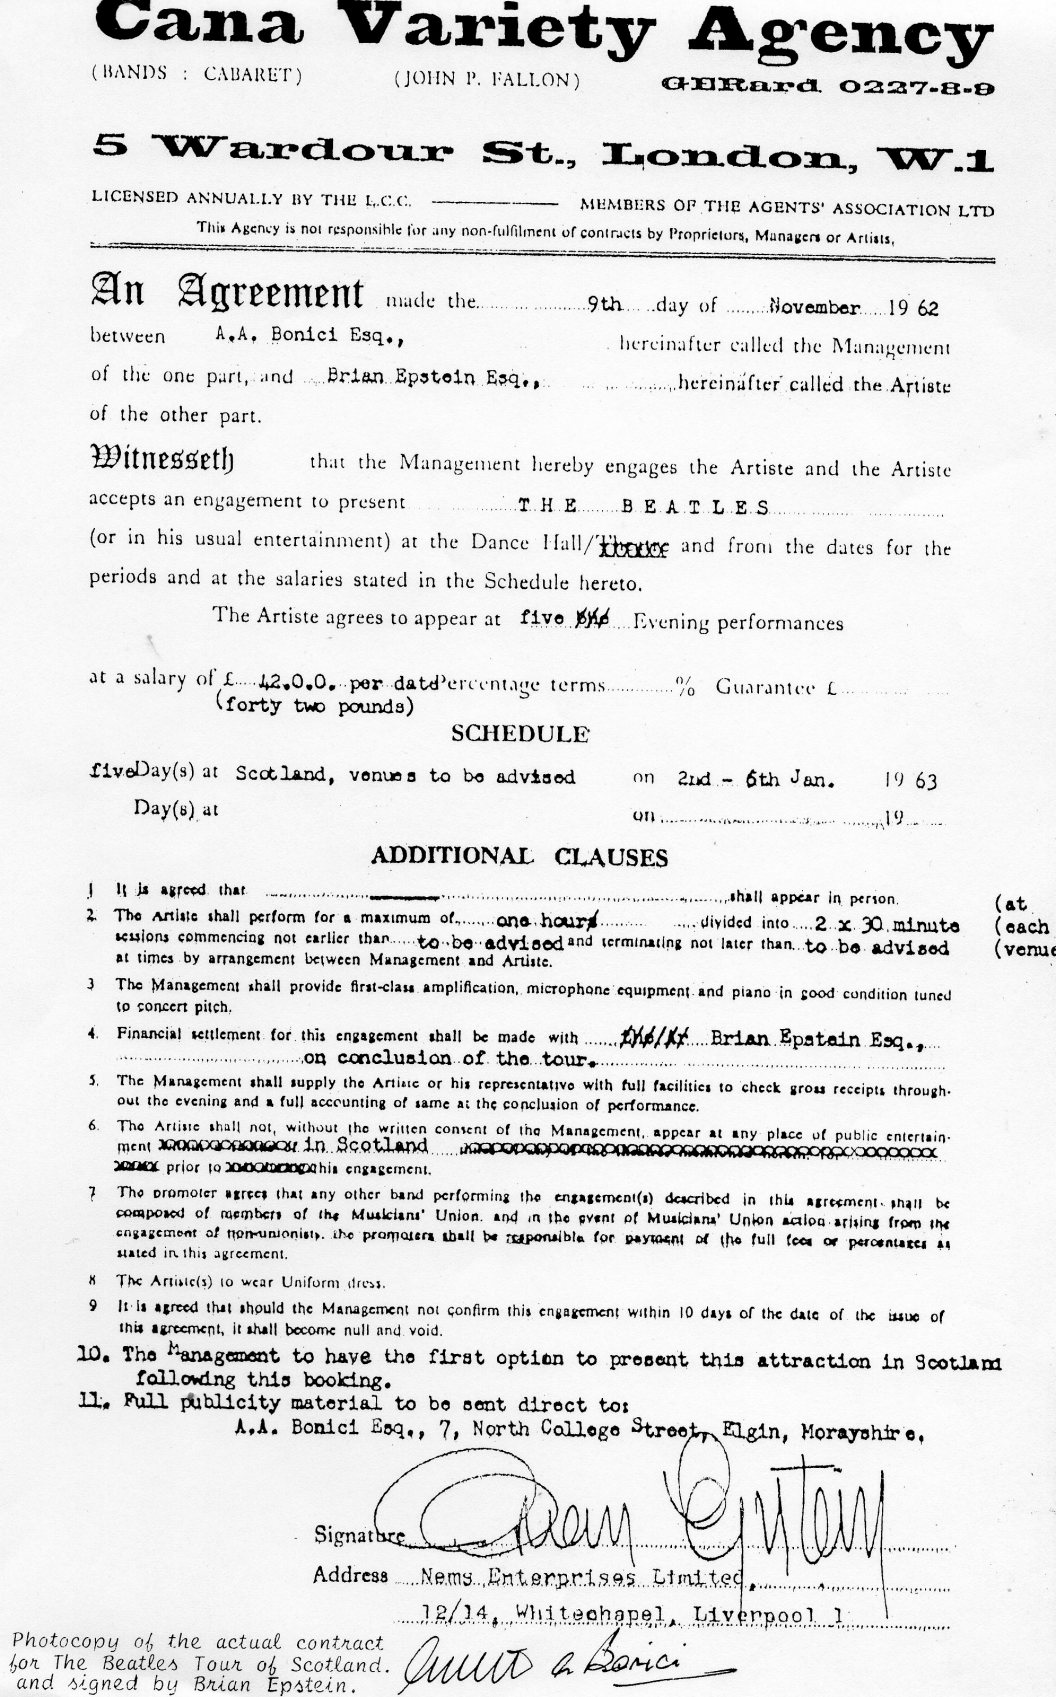 beatles signed contract